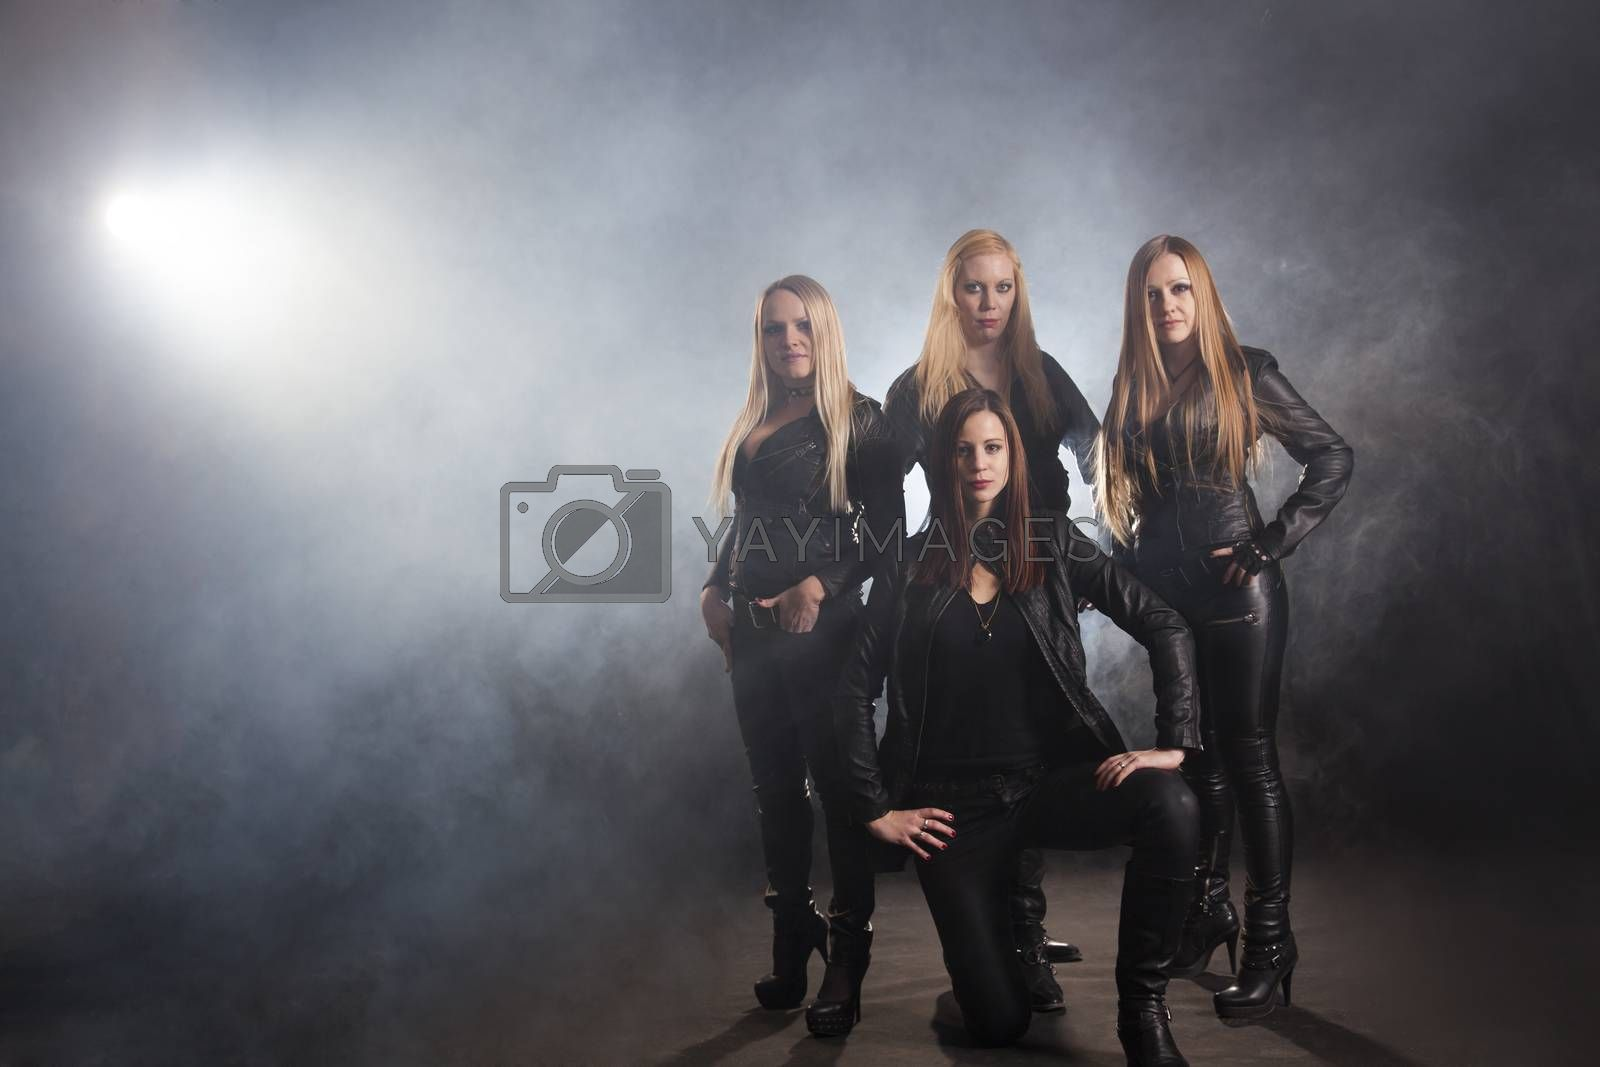 Group Of Female Friends Standing In Smoke; Indoors